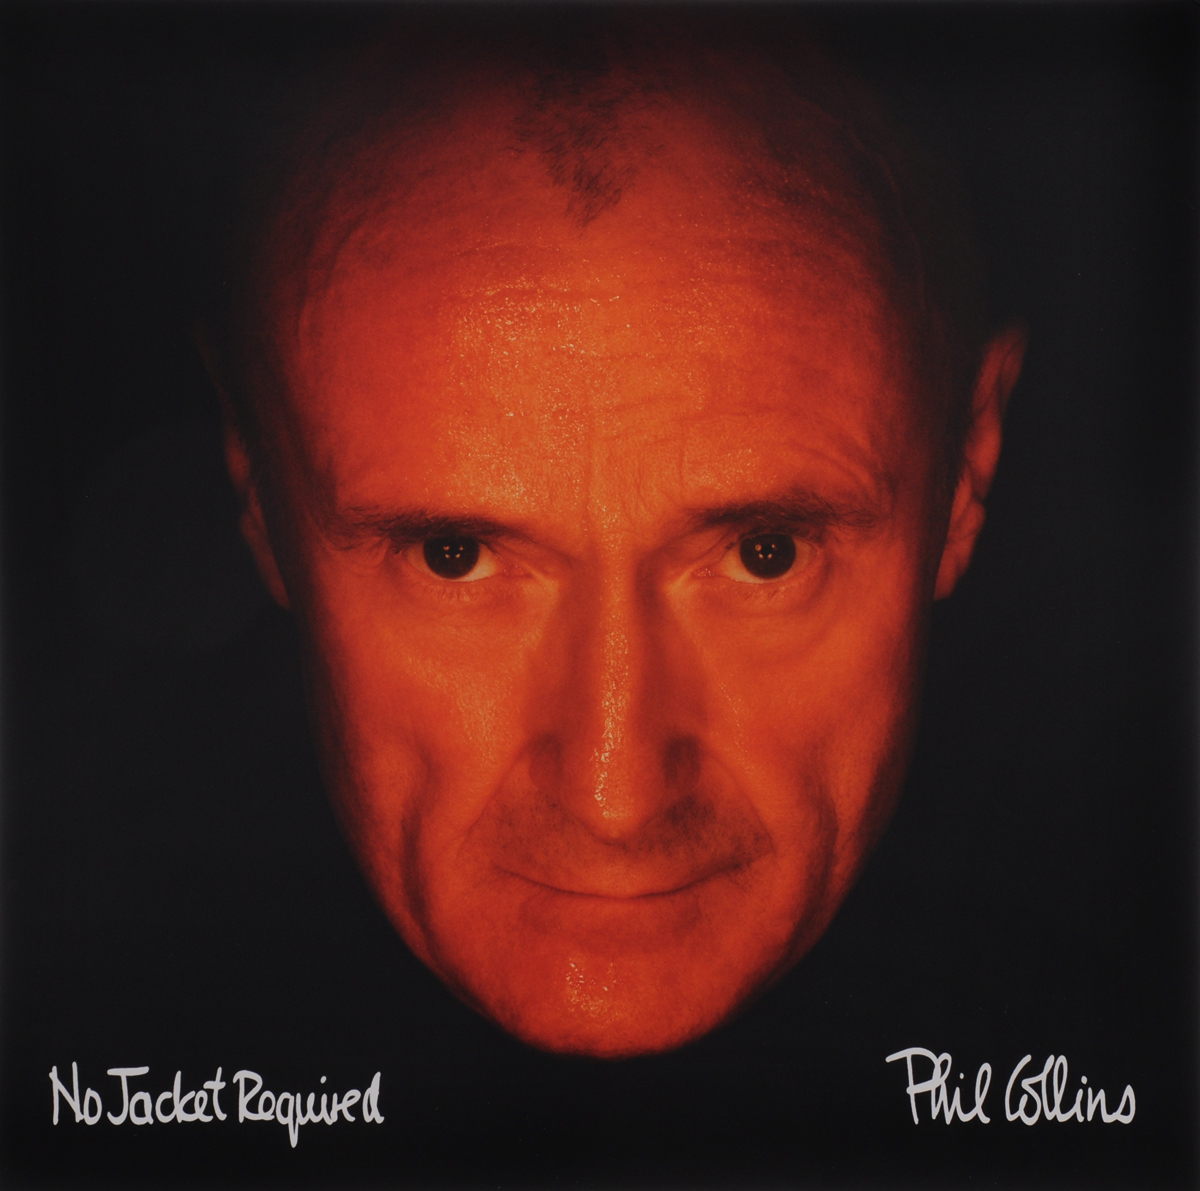 Фил Коллинз Phil Collins. No Jacket Required (LP) phil collins singles 4 lp